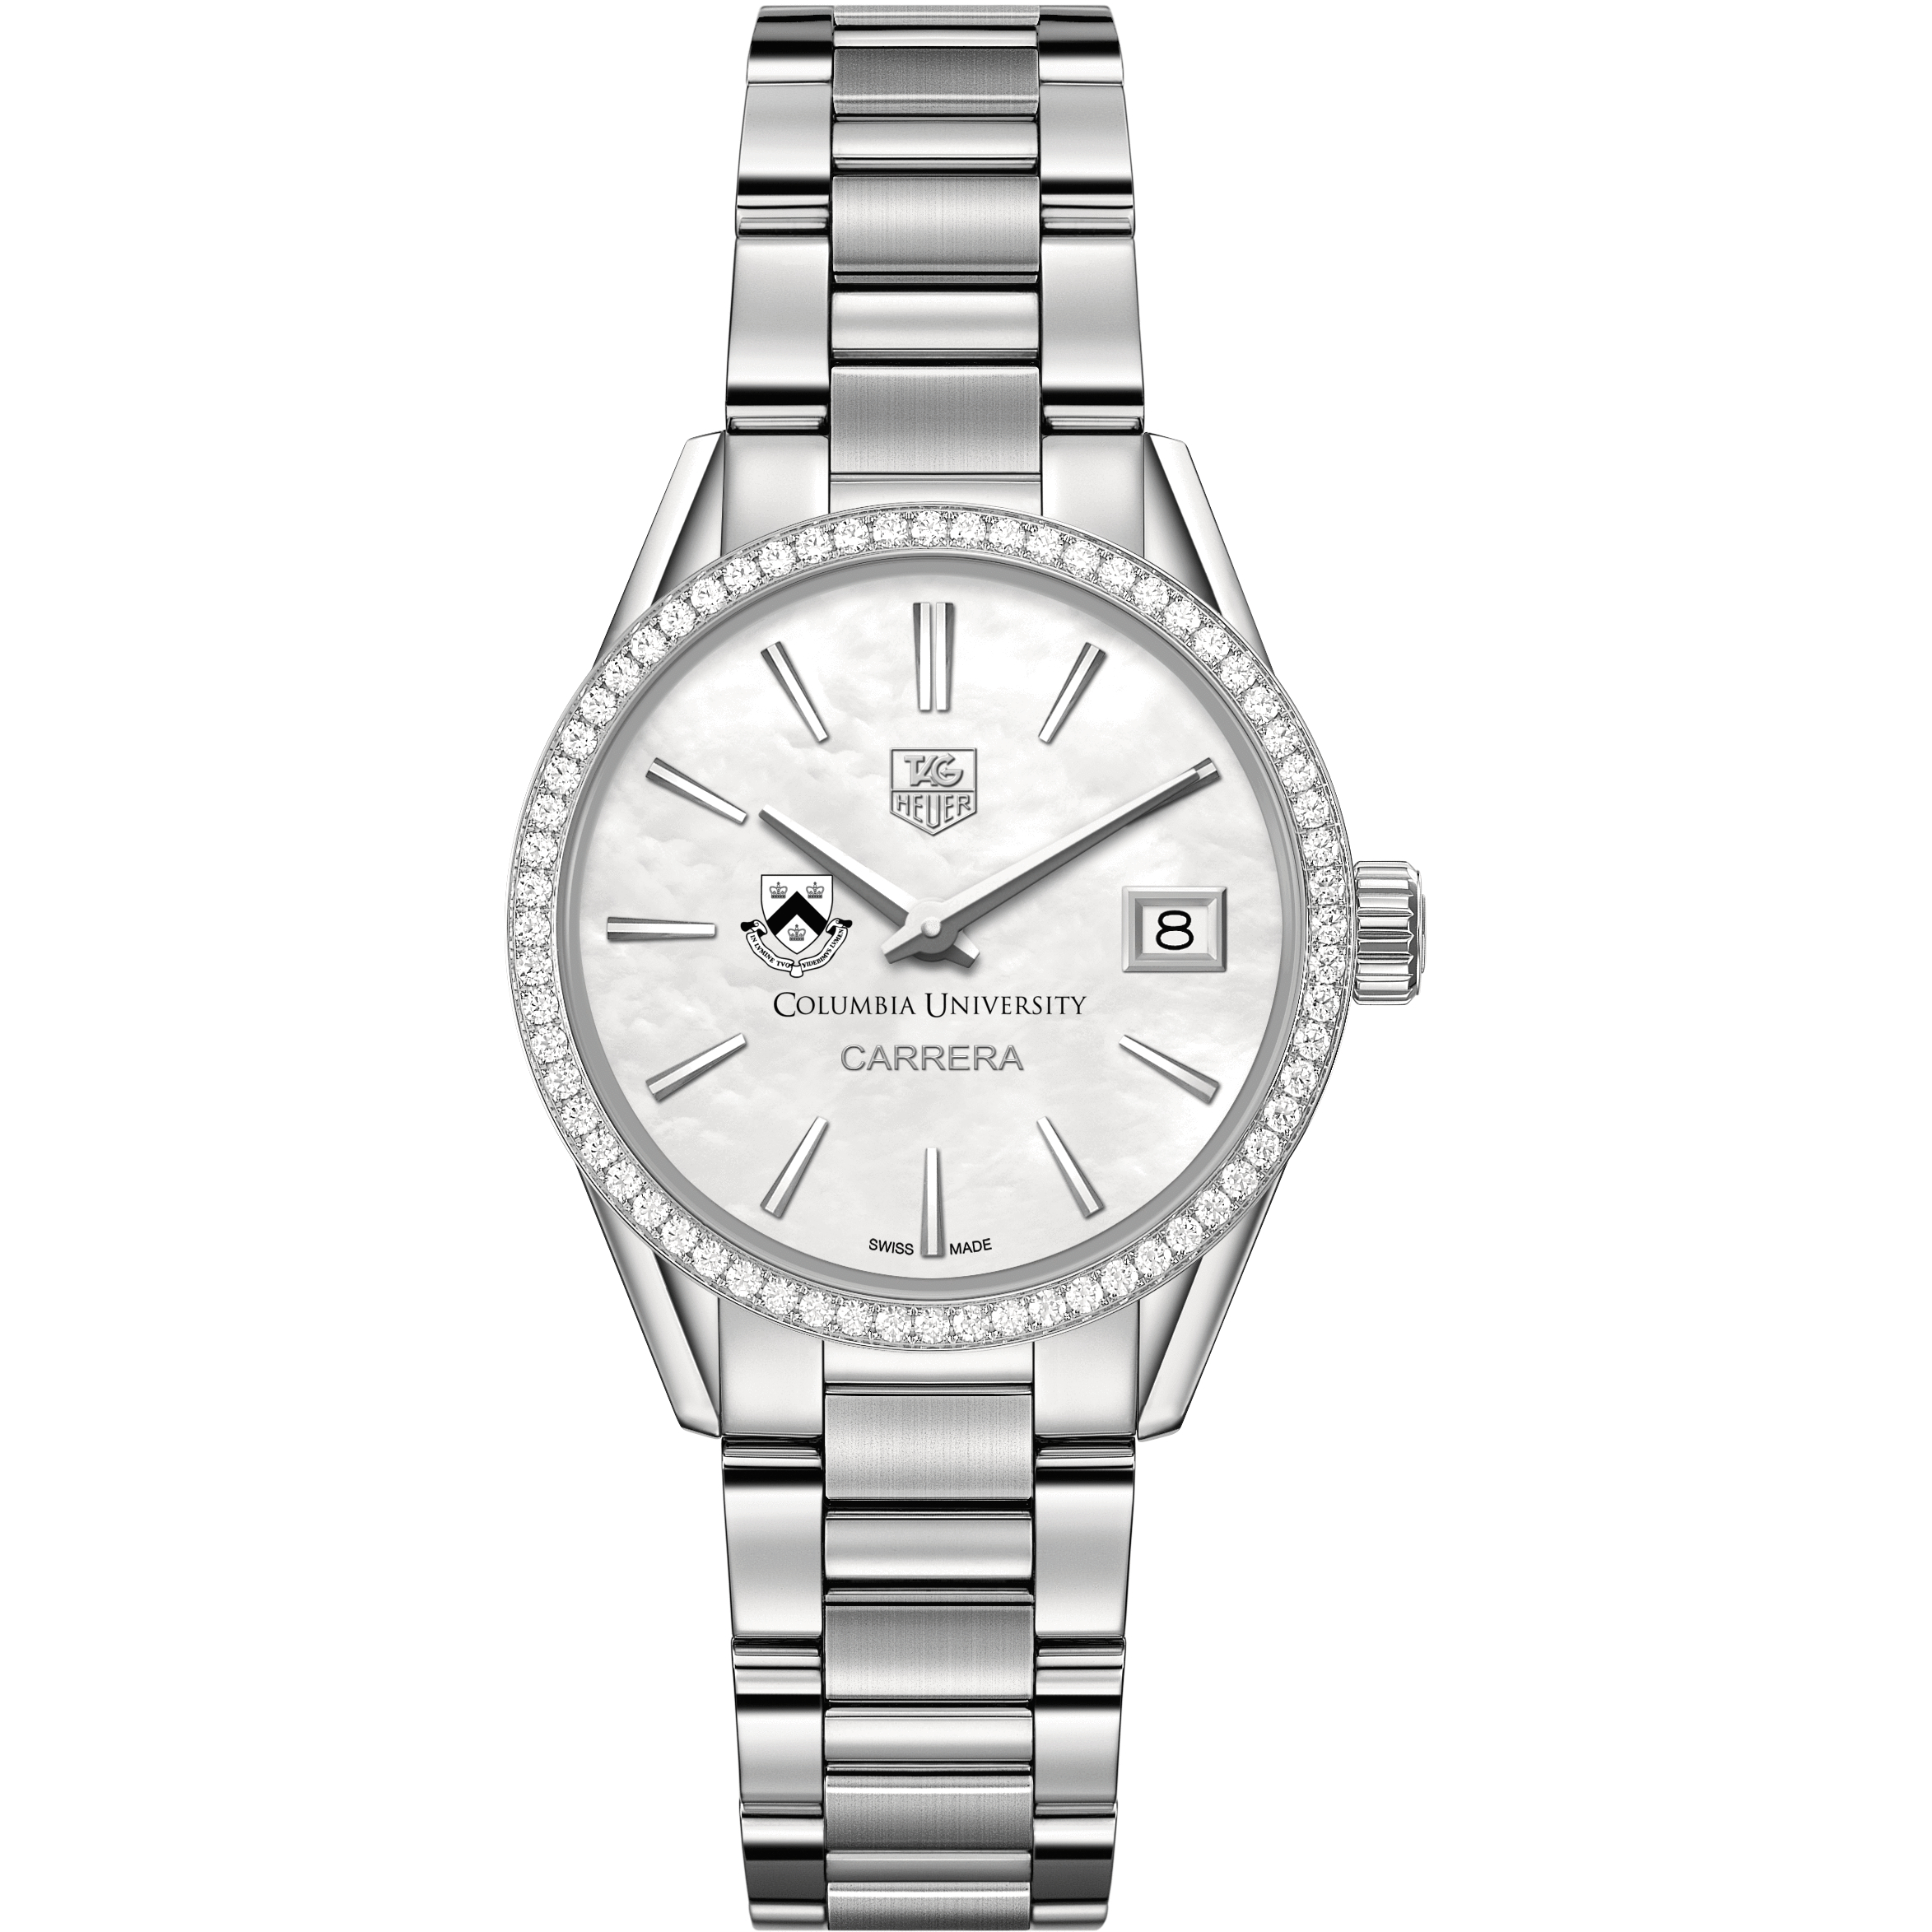 Columbia Women's TAG Heuer Steel Carrera with MOP Dial & Diamond Bezel - Image 2